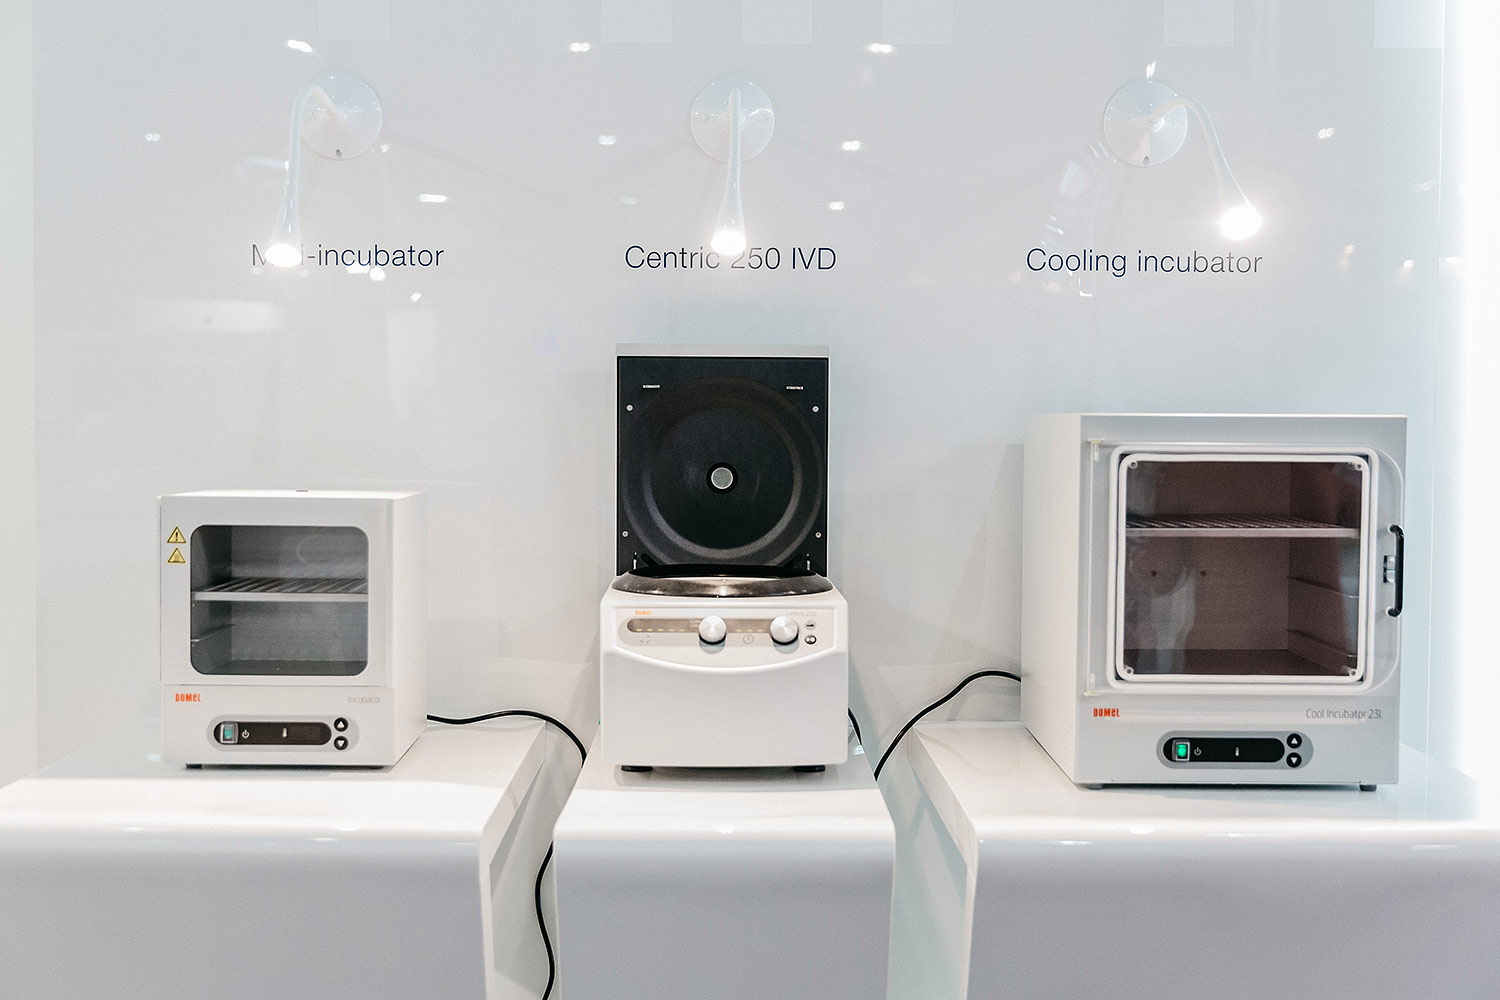 Domel diagnostic equipment. Mini-incubator, Centric 250 IVD, Cooling incubator. The exhibition stand.